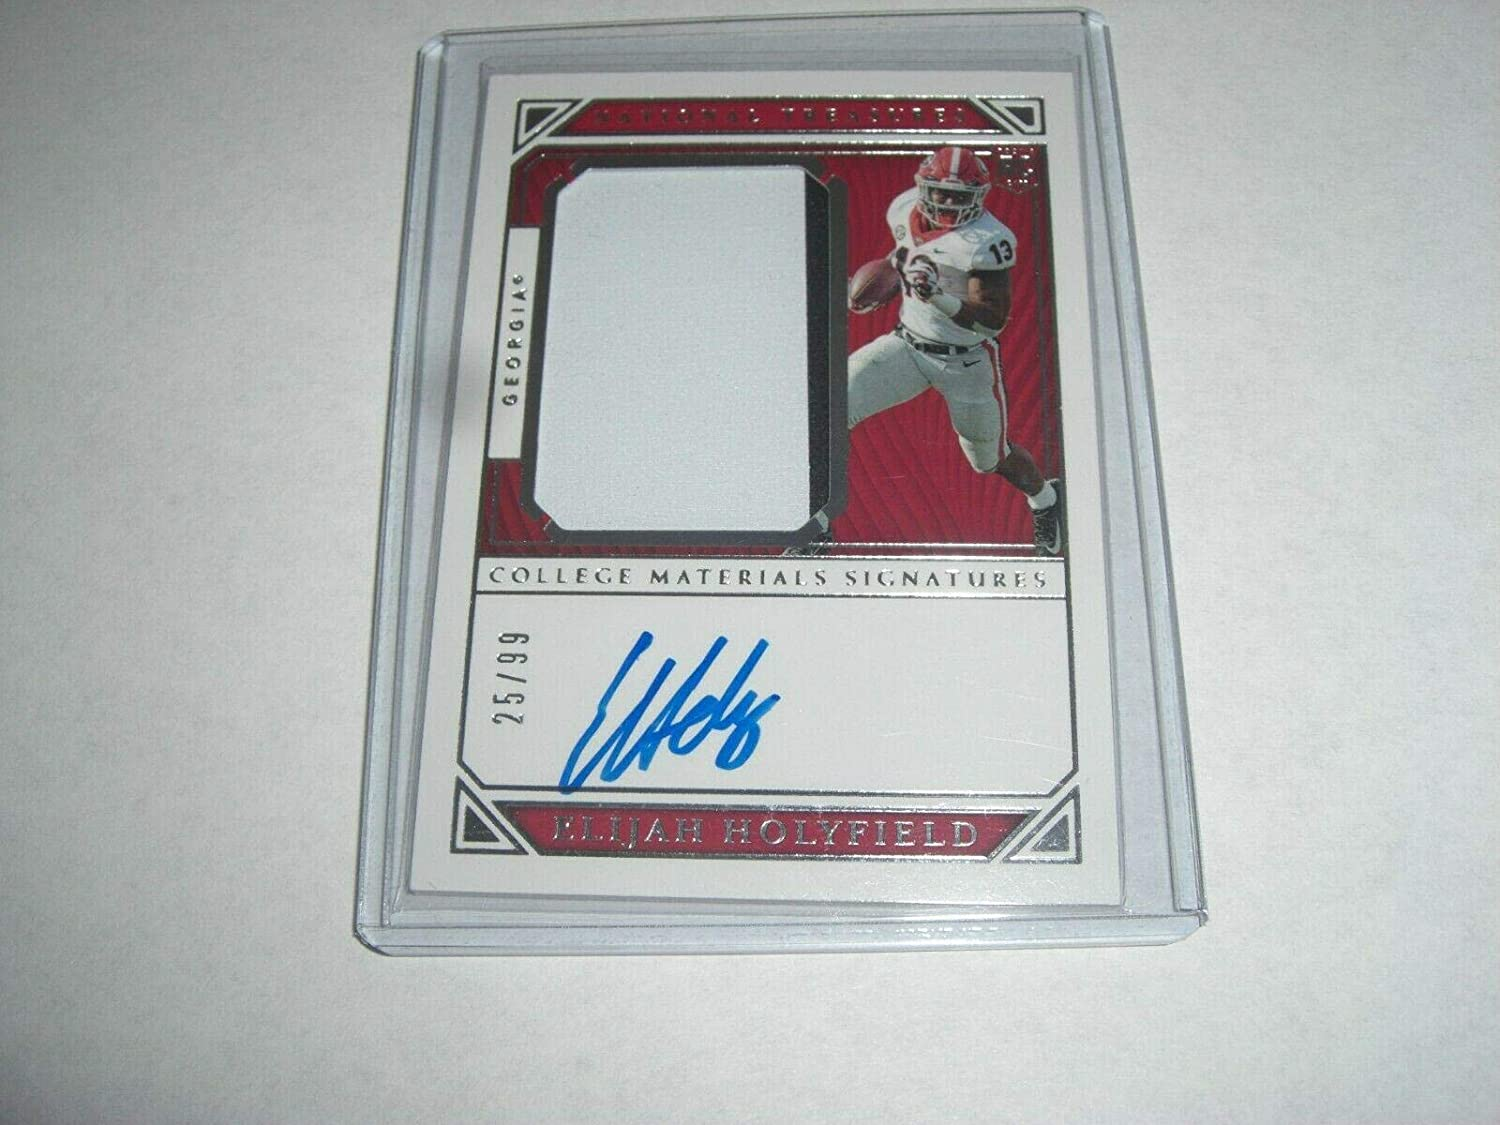 Elijah Holyfield 2019 National Treasures Game Used Jersey Auto 25/99 Signed Card - College Game Used Jerseys